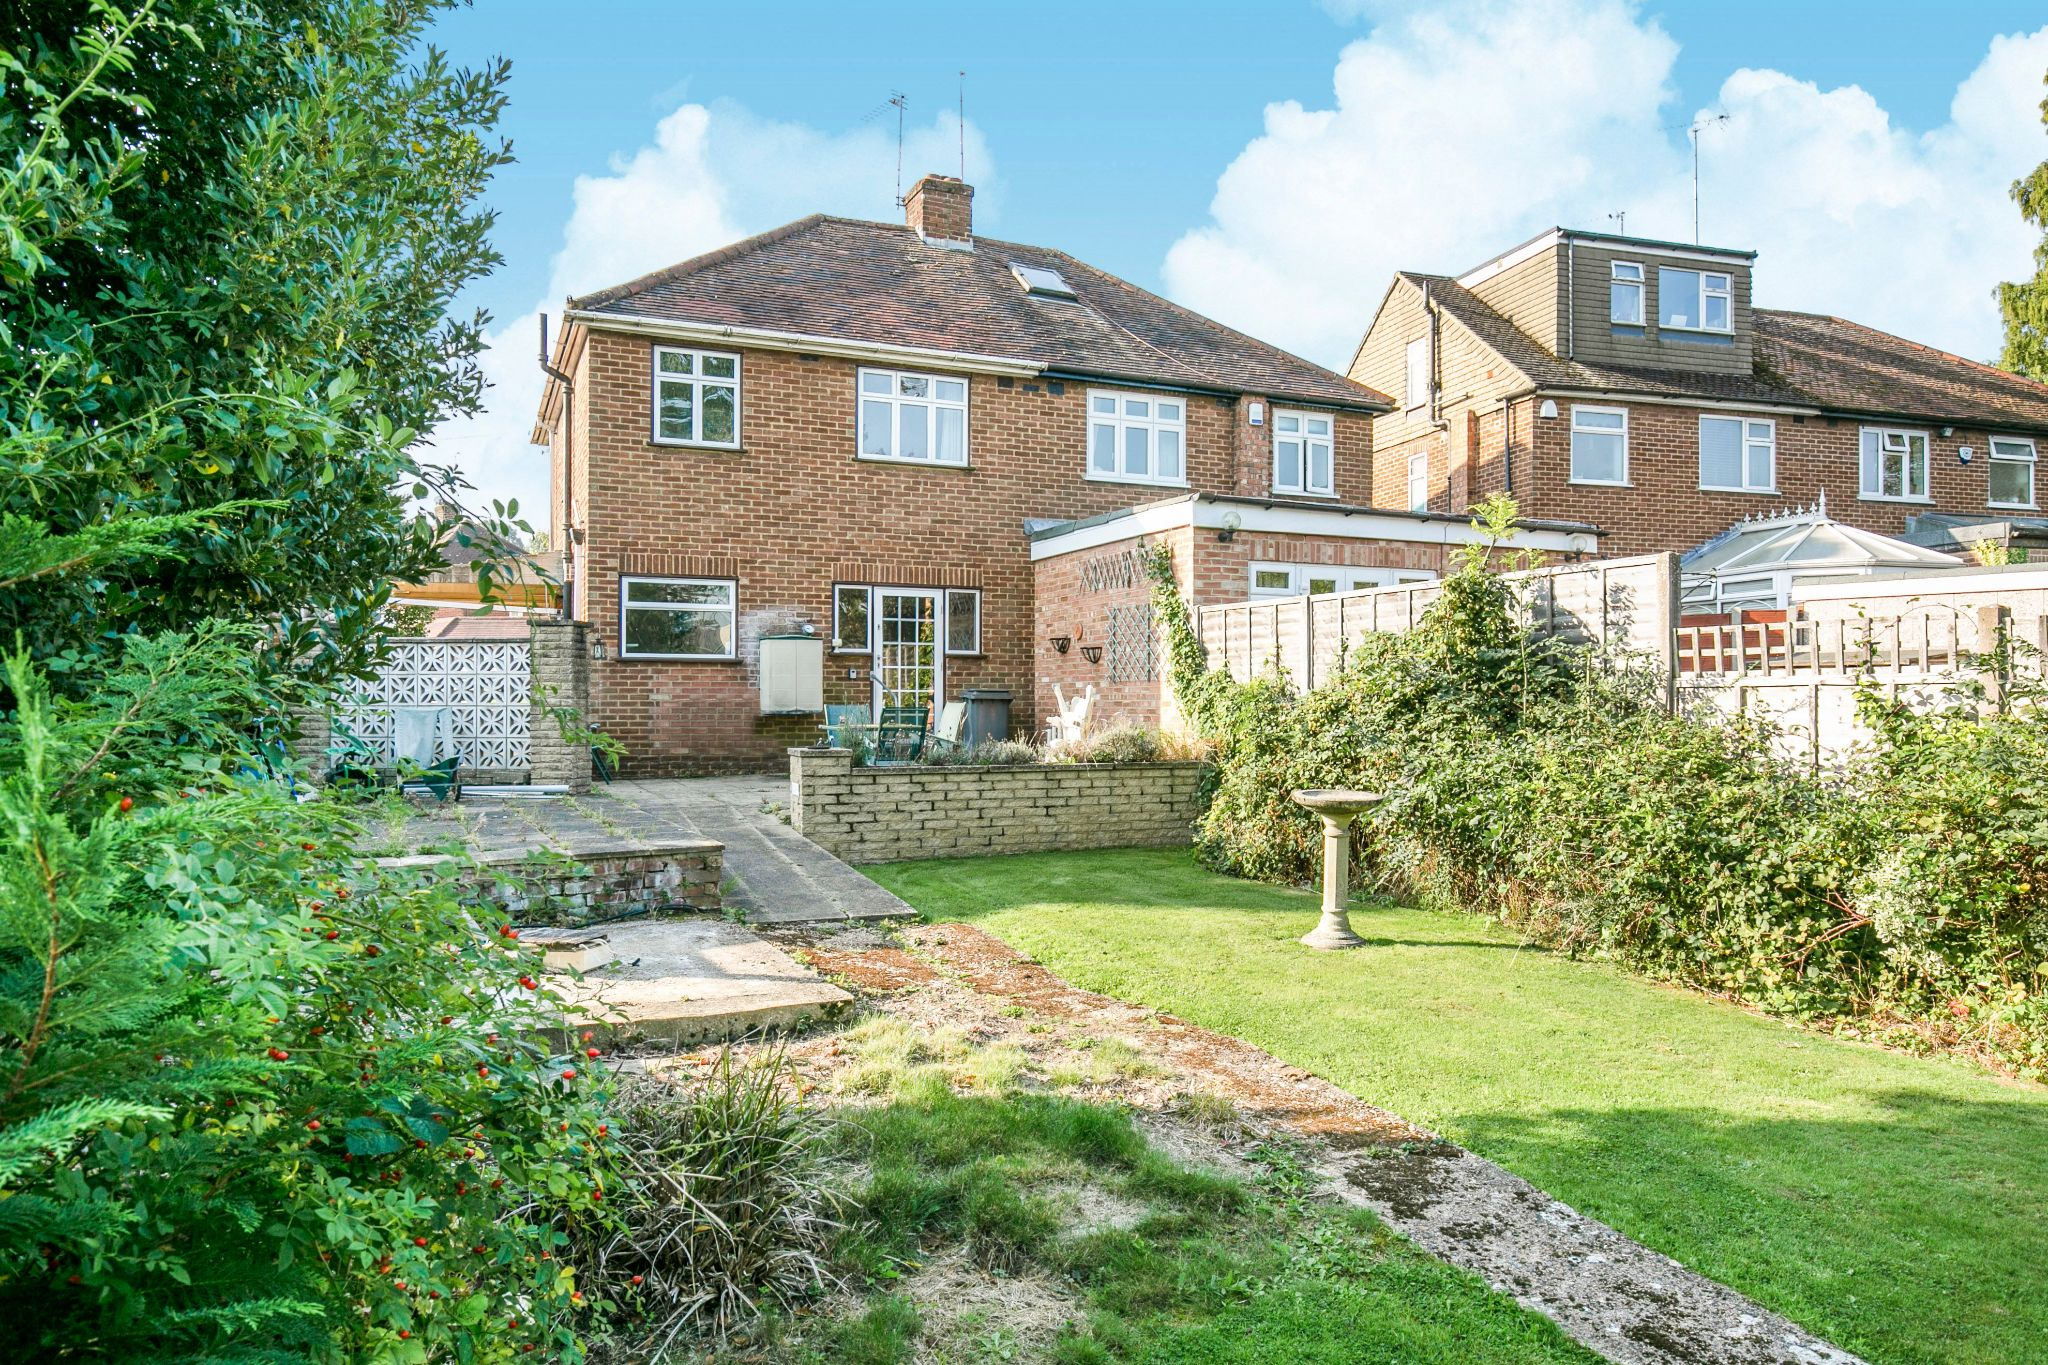 3 bedroom semi-detached house Sold in Potters Bar - Photograph 5